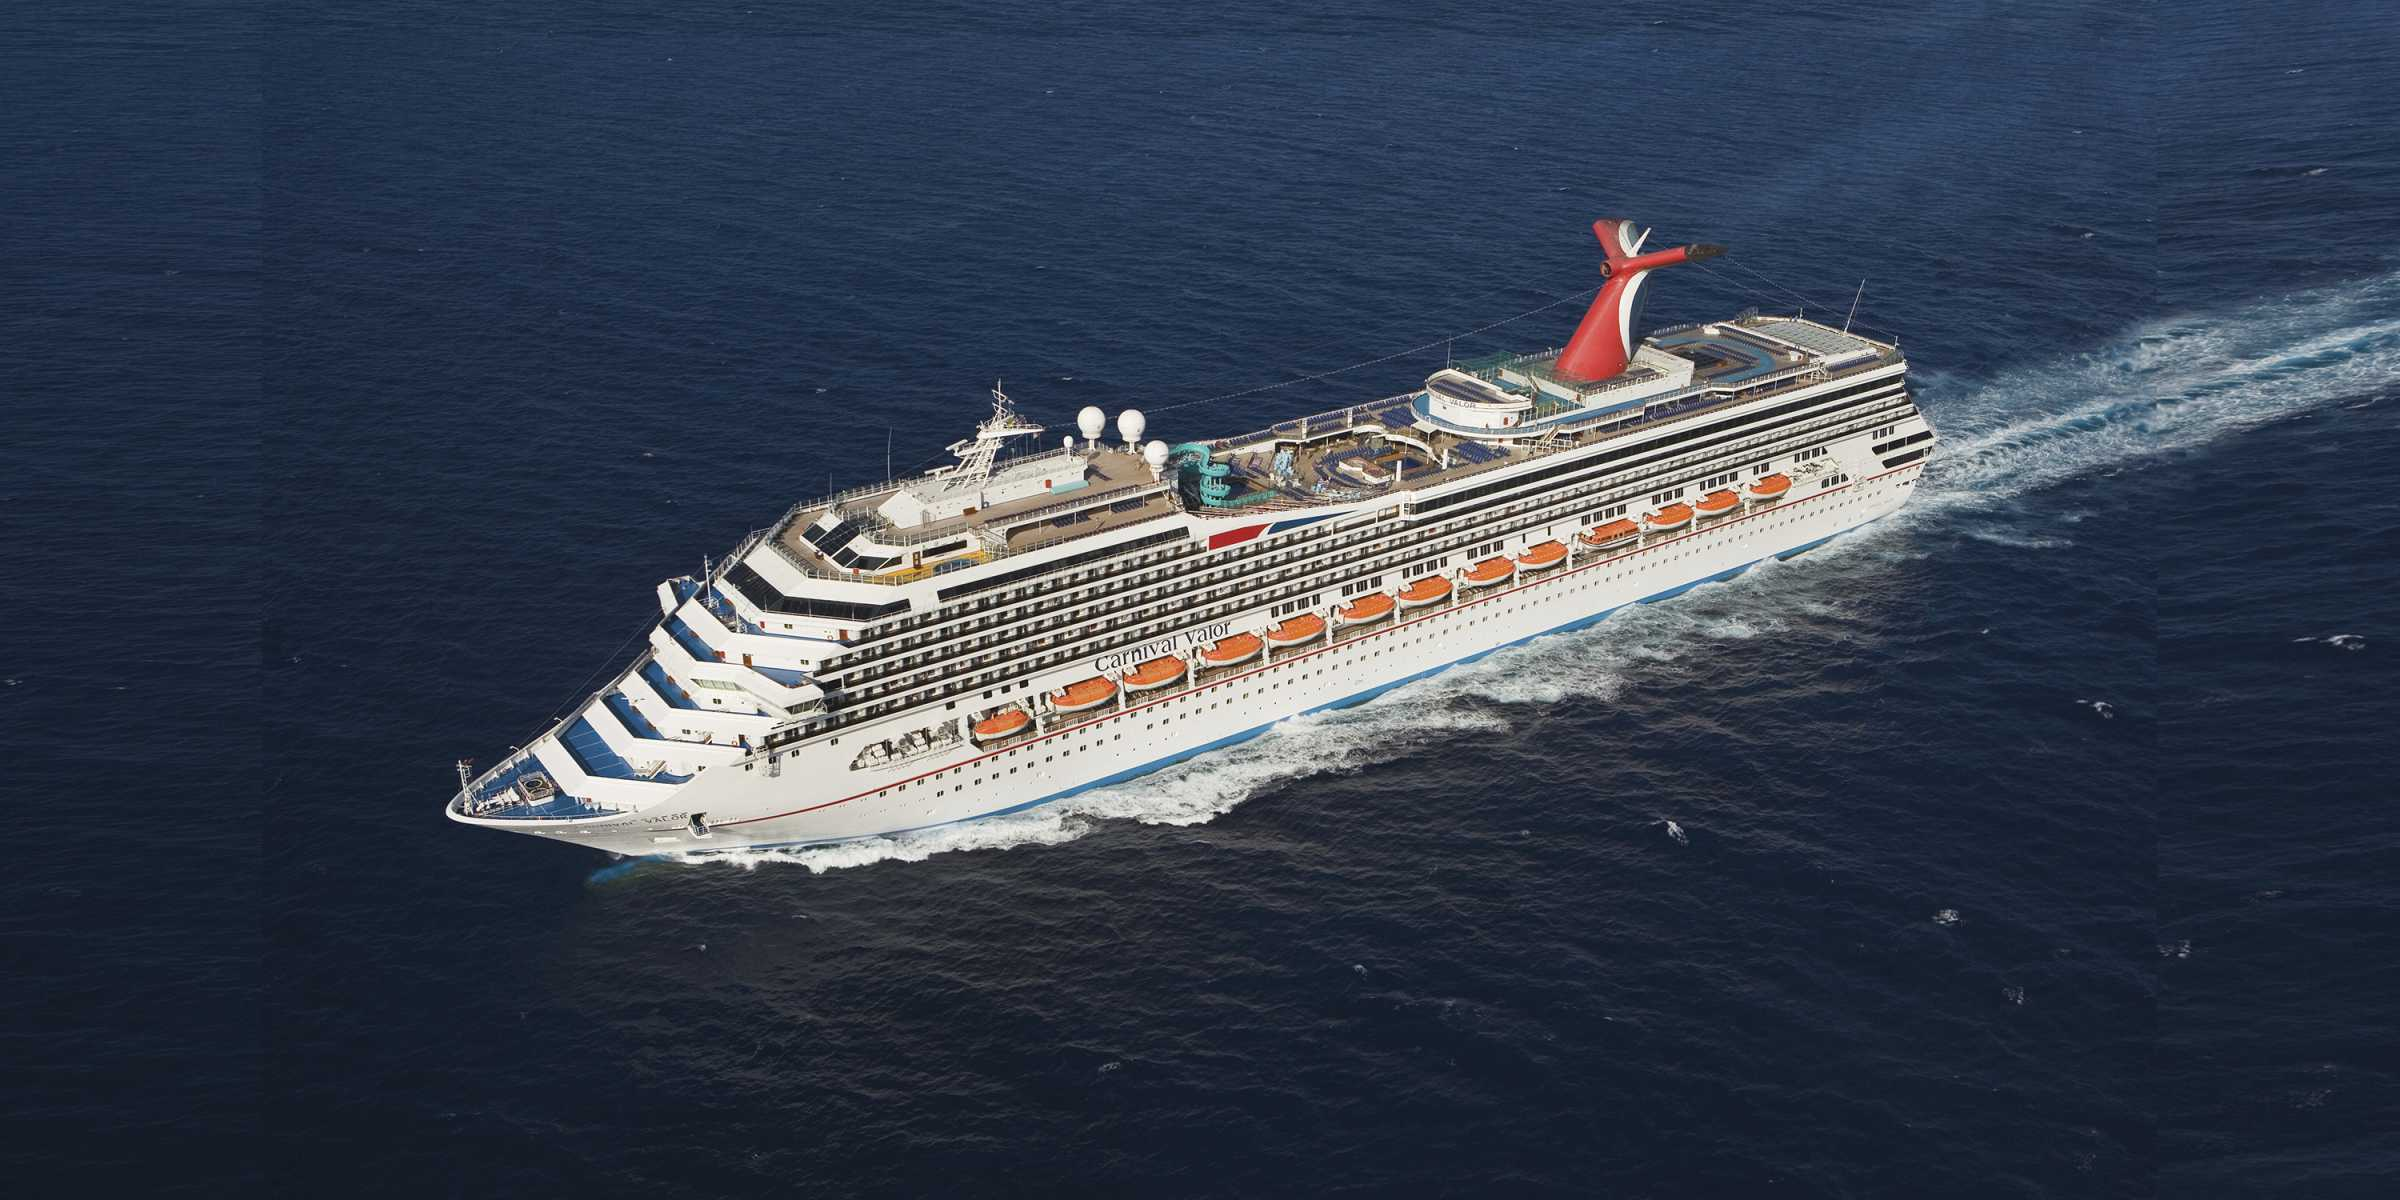 carnival freedom balcony room size Carnival Cruises Cruise Deals On Carnival Valor